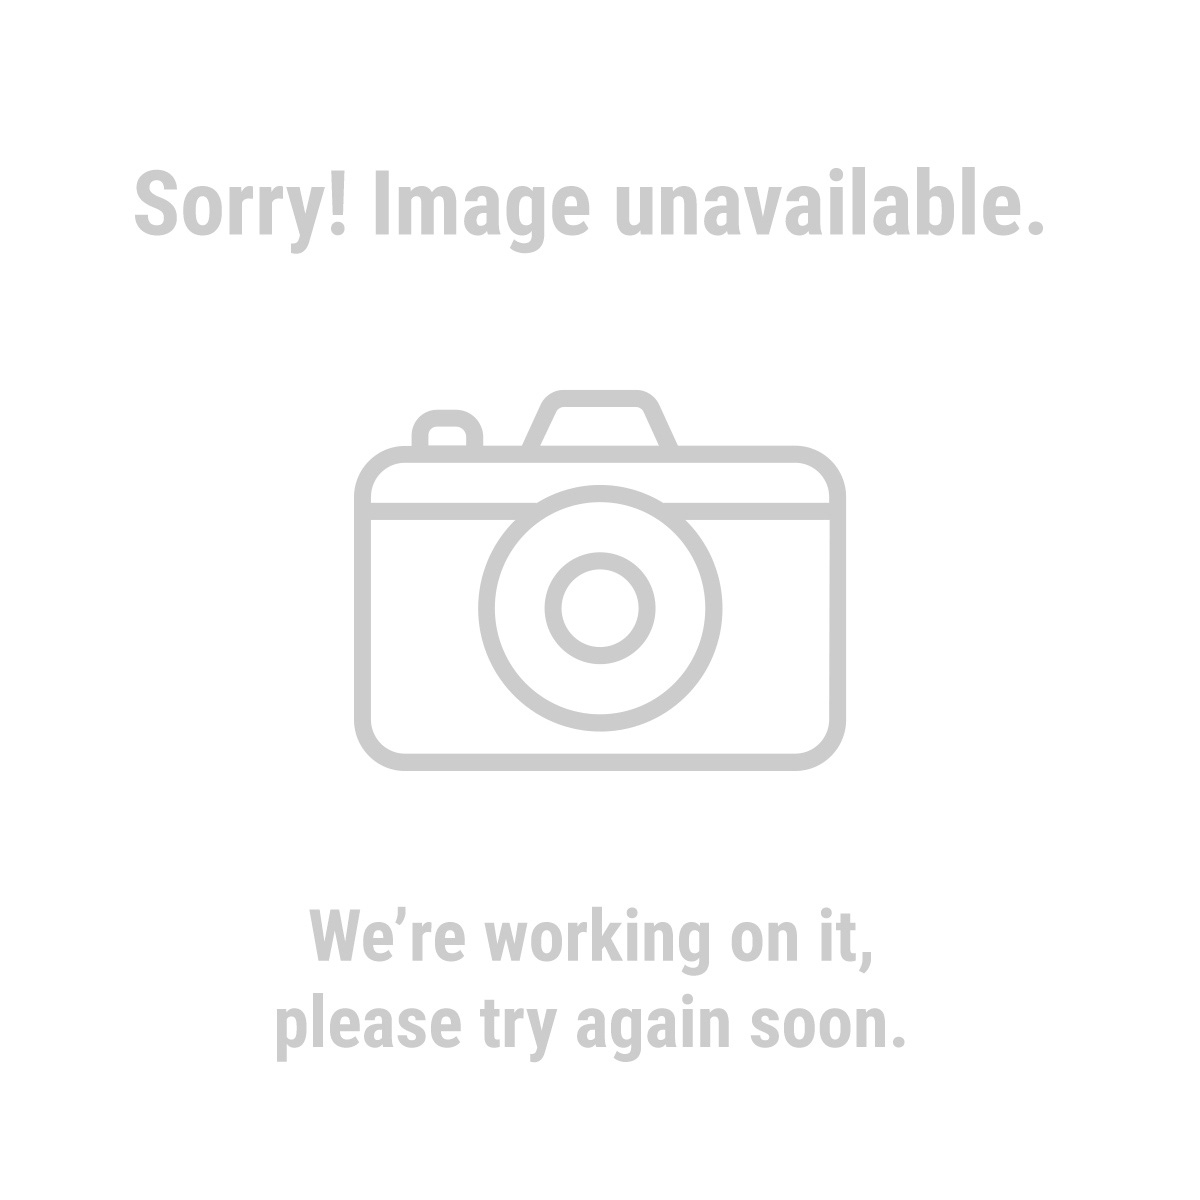 8 Piece Wood Lathe Turning Tool Kit